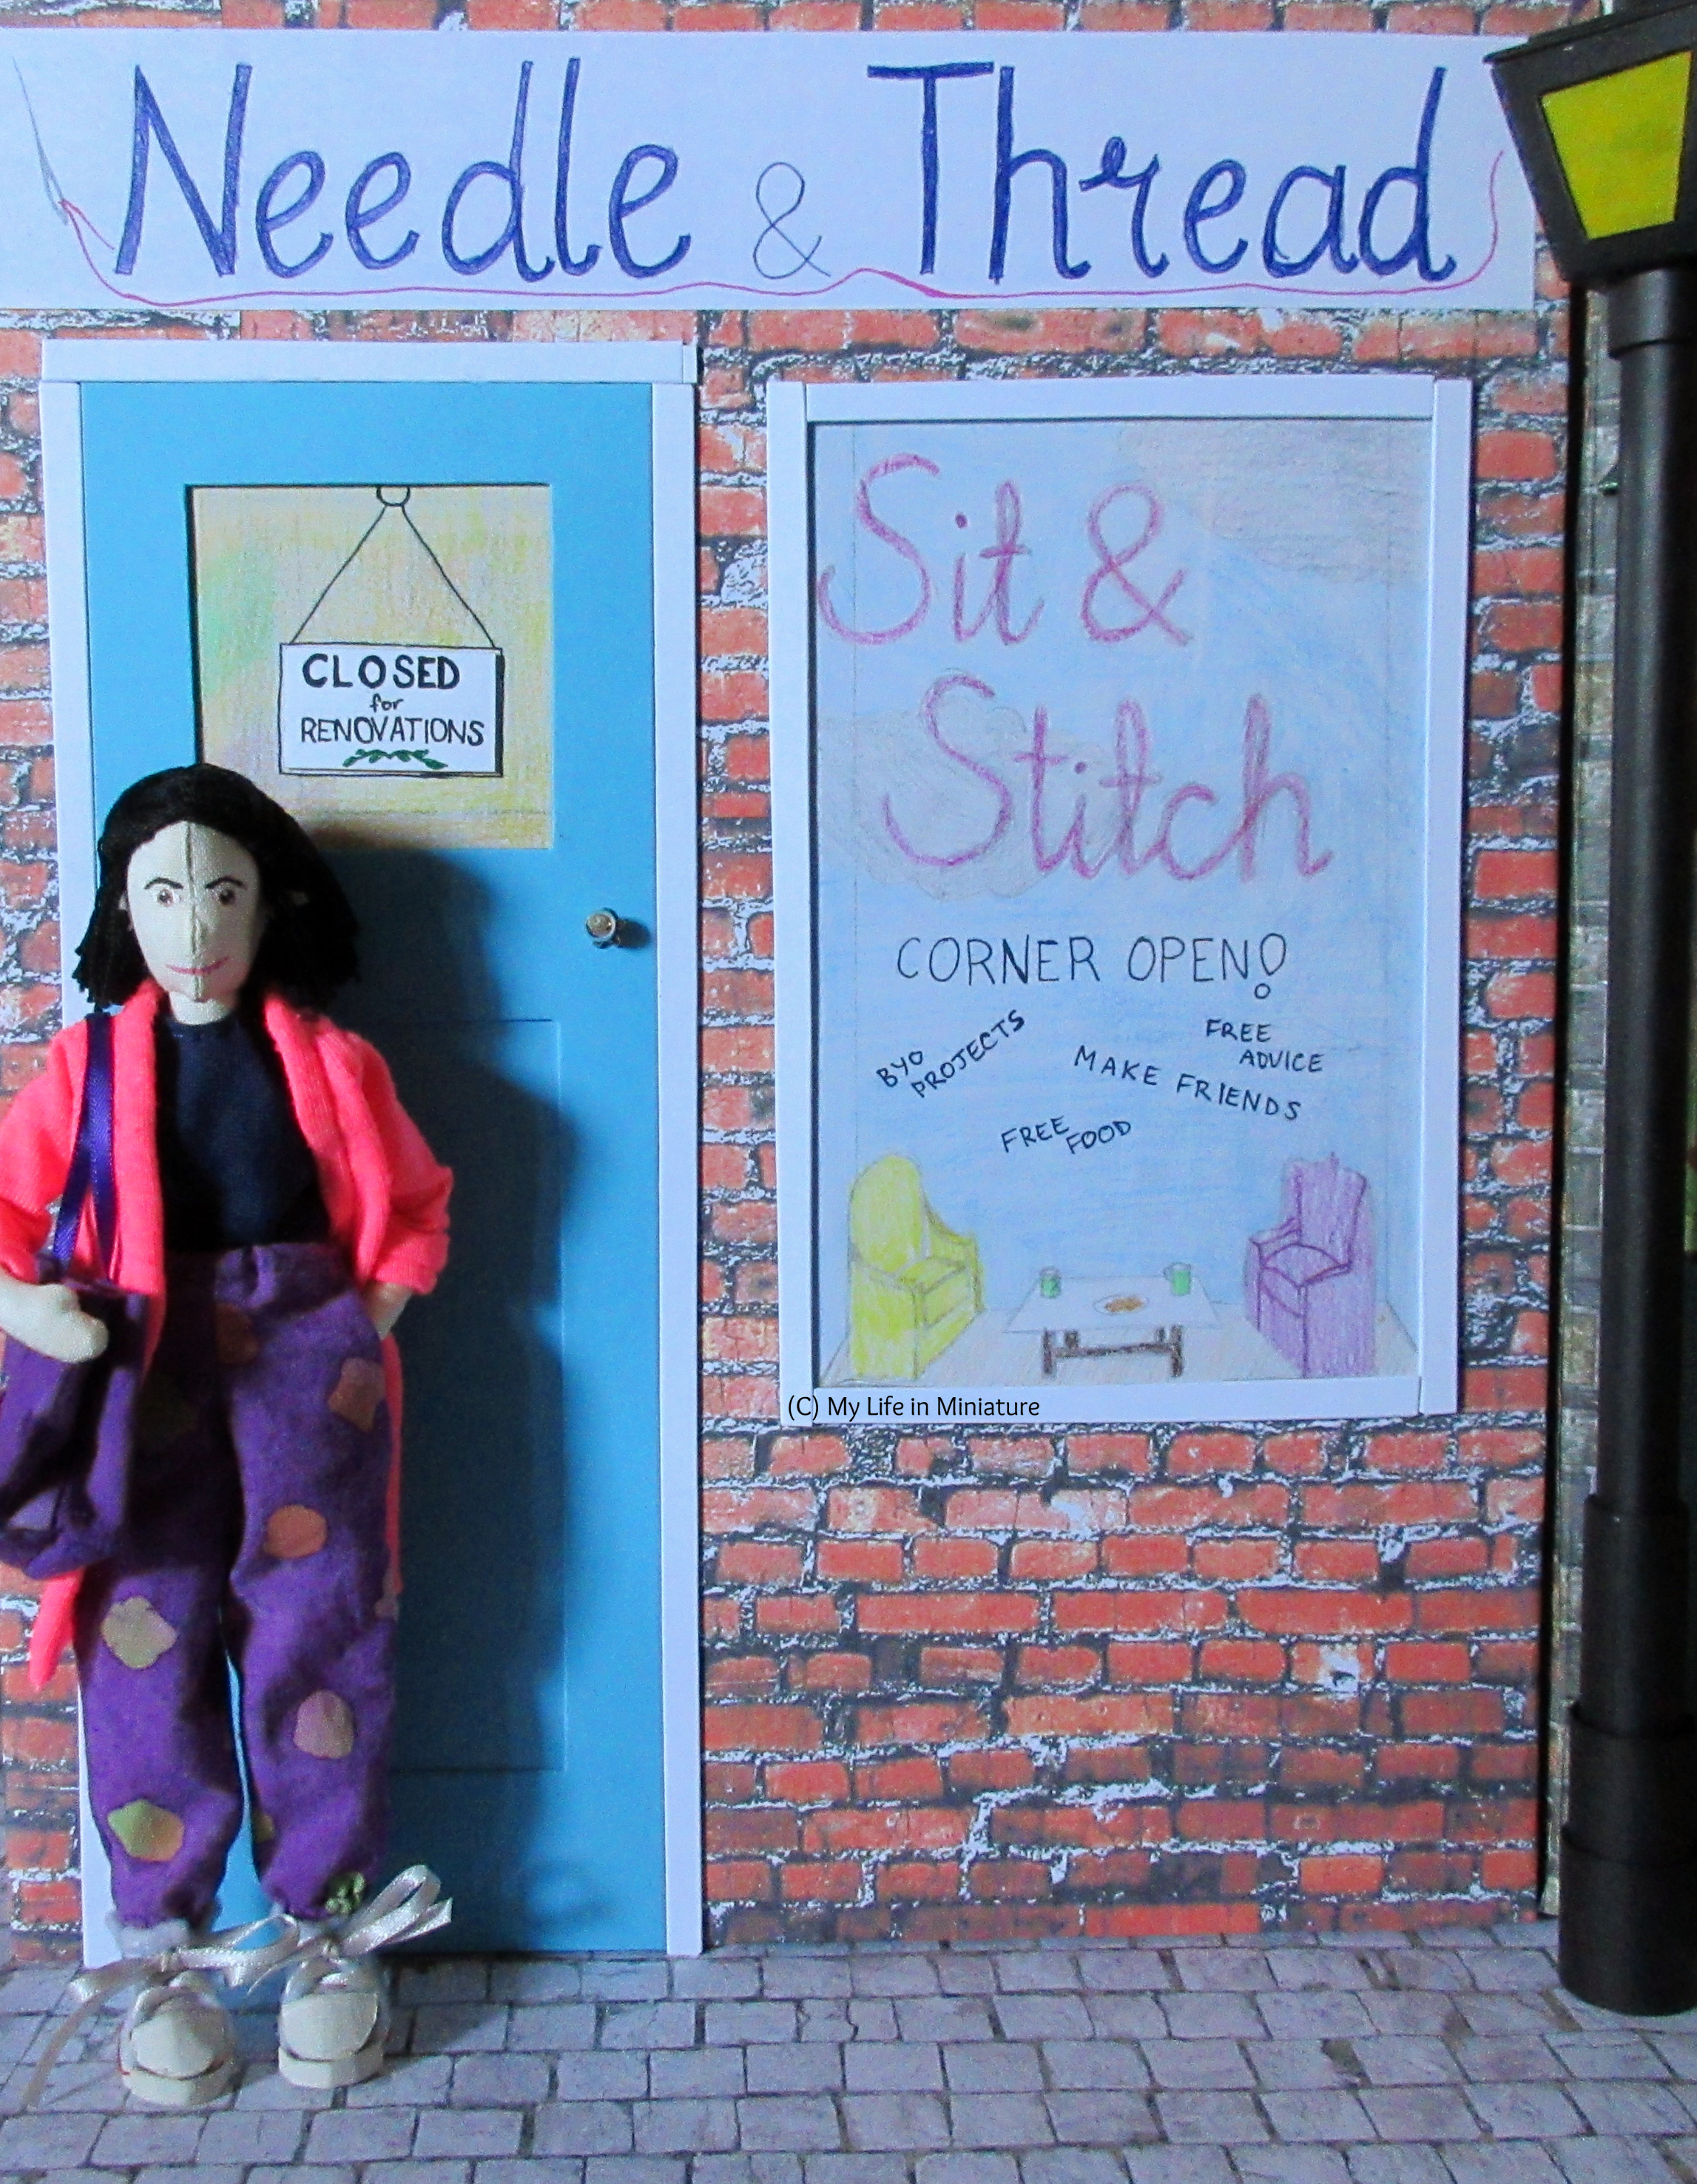 Tiffany stands in front of the blue door of Needle & Thread's front façade. She has a purple tote bag on her shoulder, and a hand in her pocket.